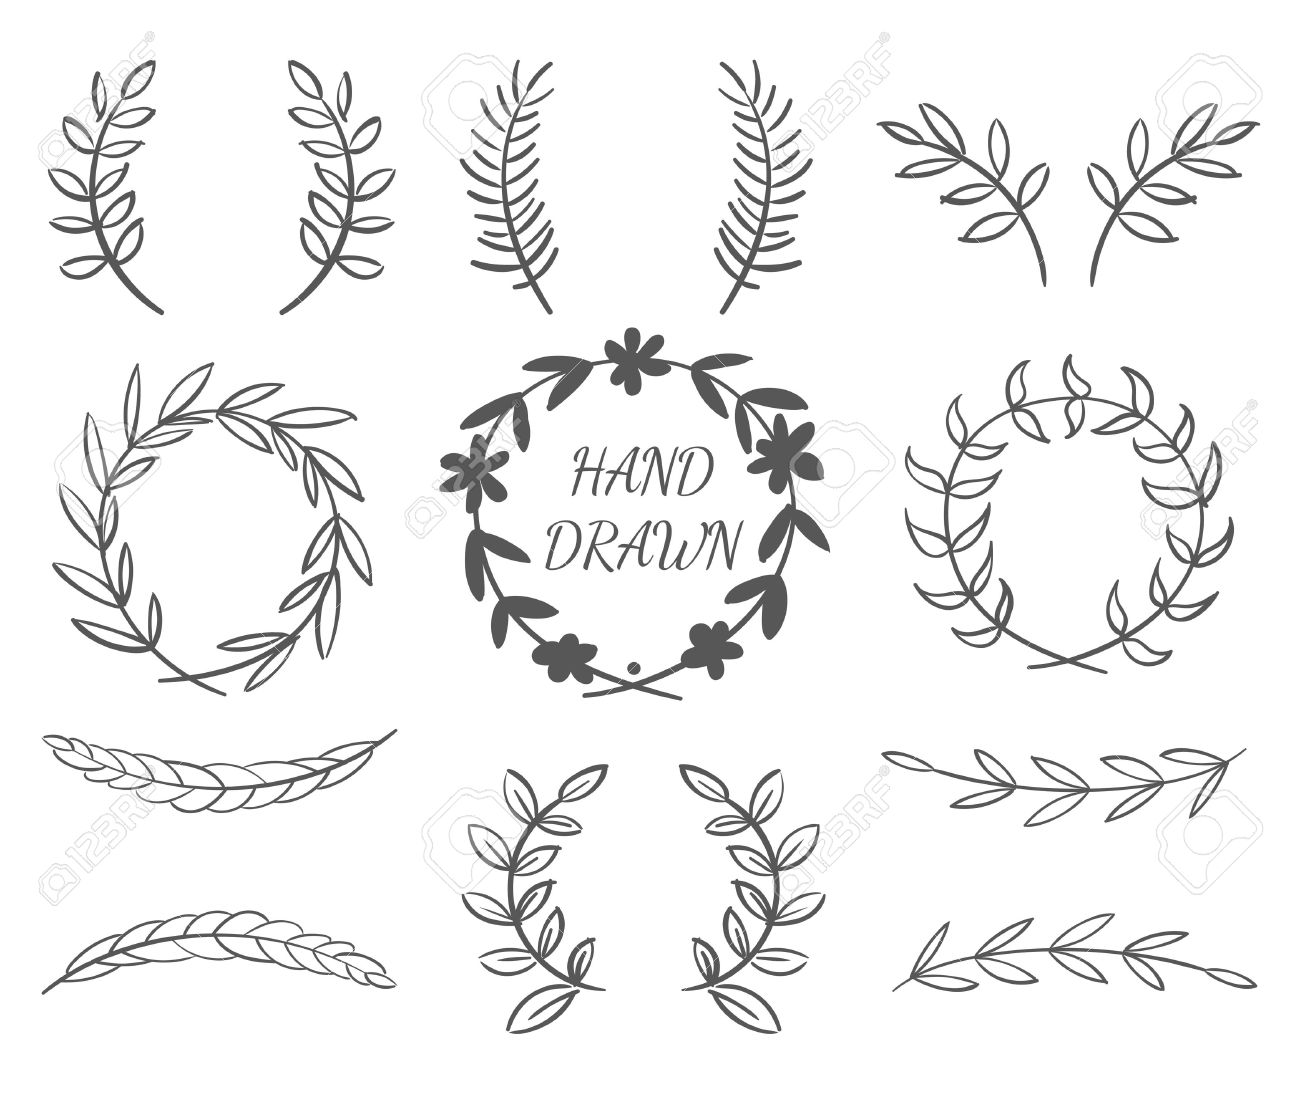 Hand Drawn Vector Set Of Wreaths For Invitations, Greeting Cards And Designs - 44250599